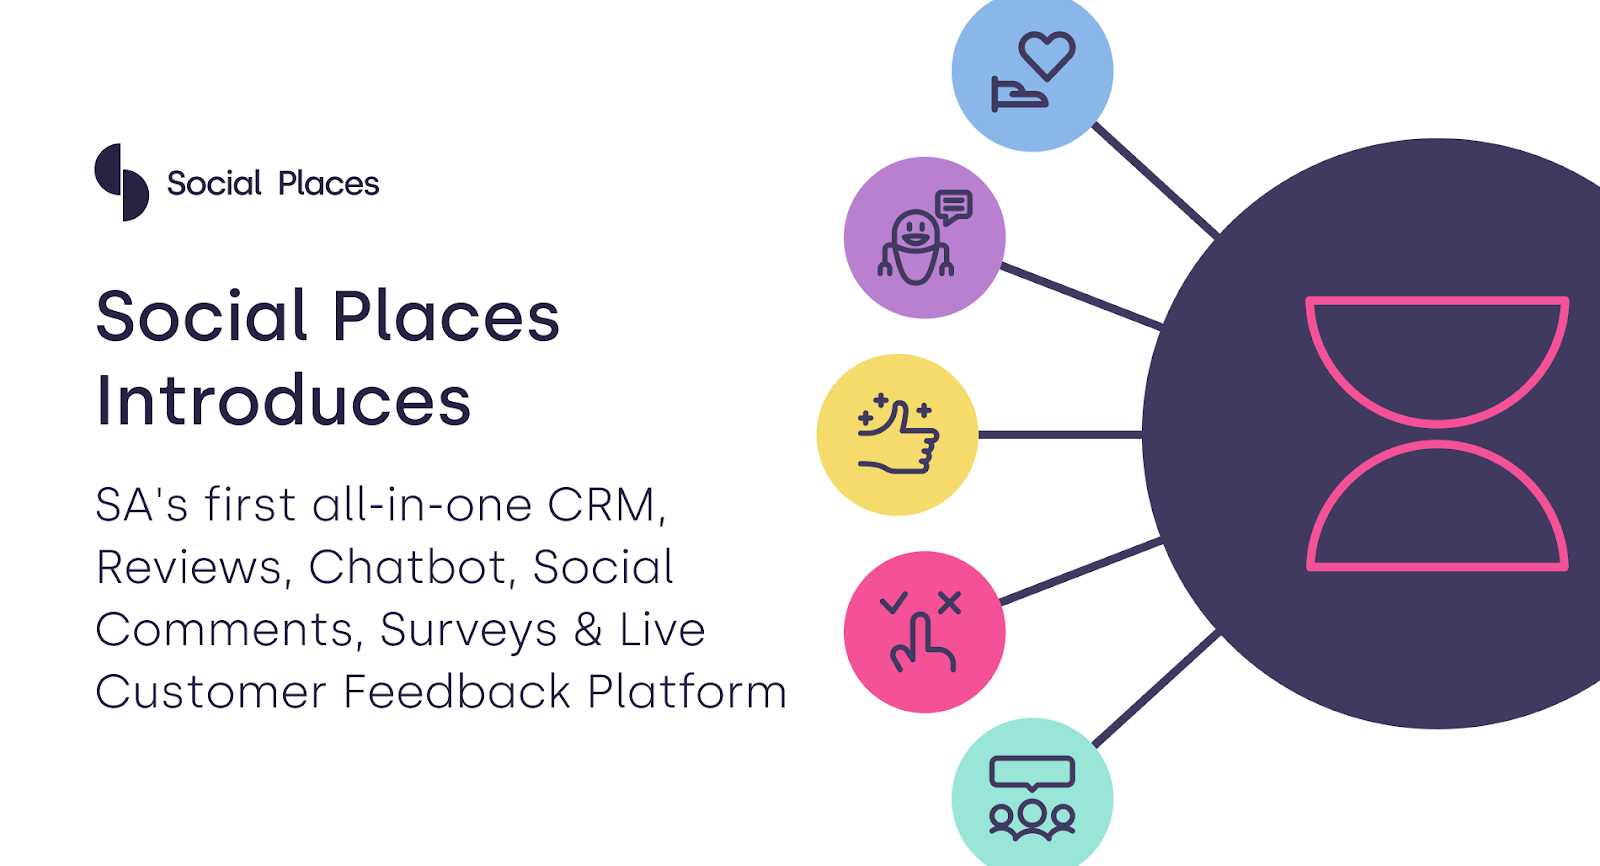 Social Places Introduces Facebook Community Management to their Tech Stack